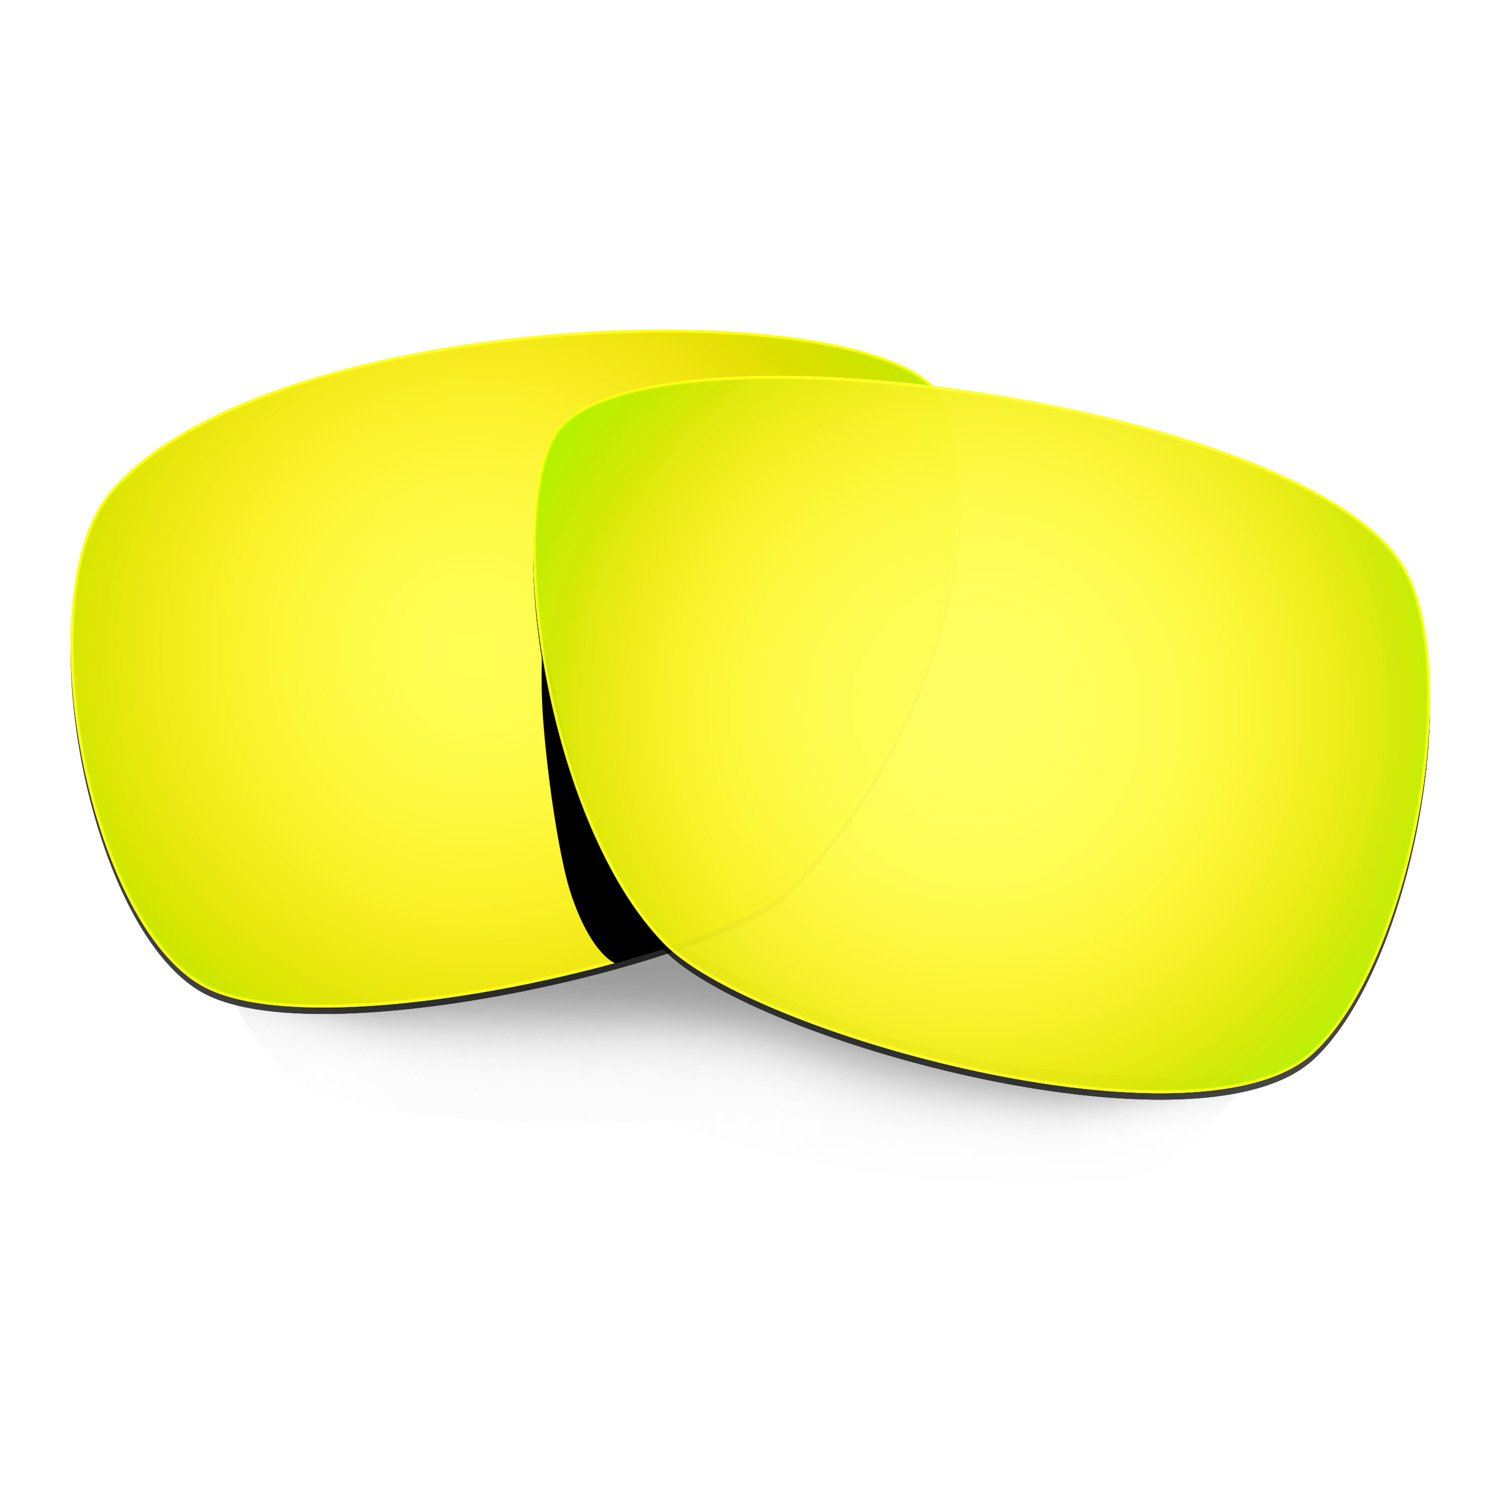 b1608b72c6 Amazon.com  HKUCO Mens Replacement Lenses for Oakley Inmate Sunglasses 24K  Gold Polarized  Sports   Outdoors